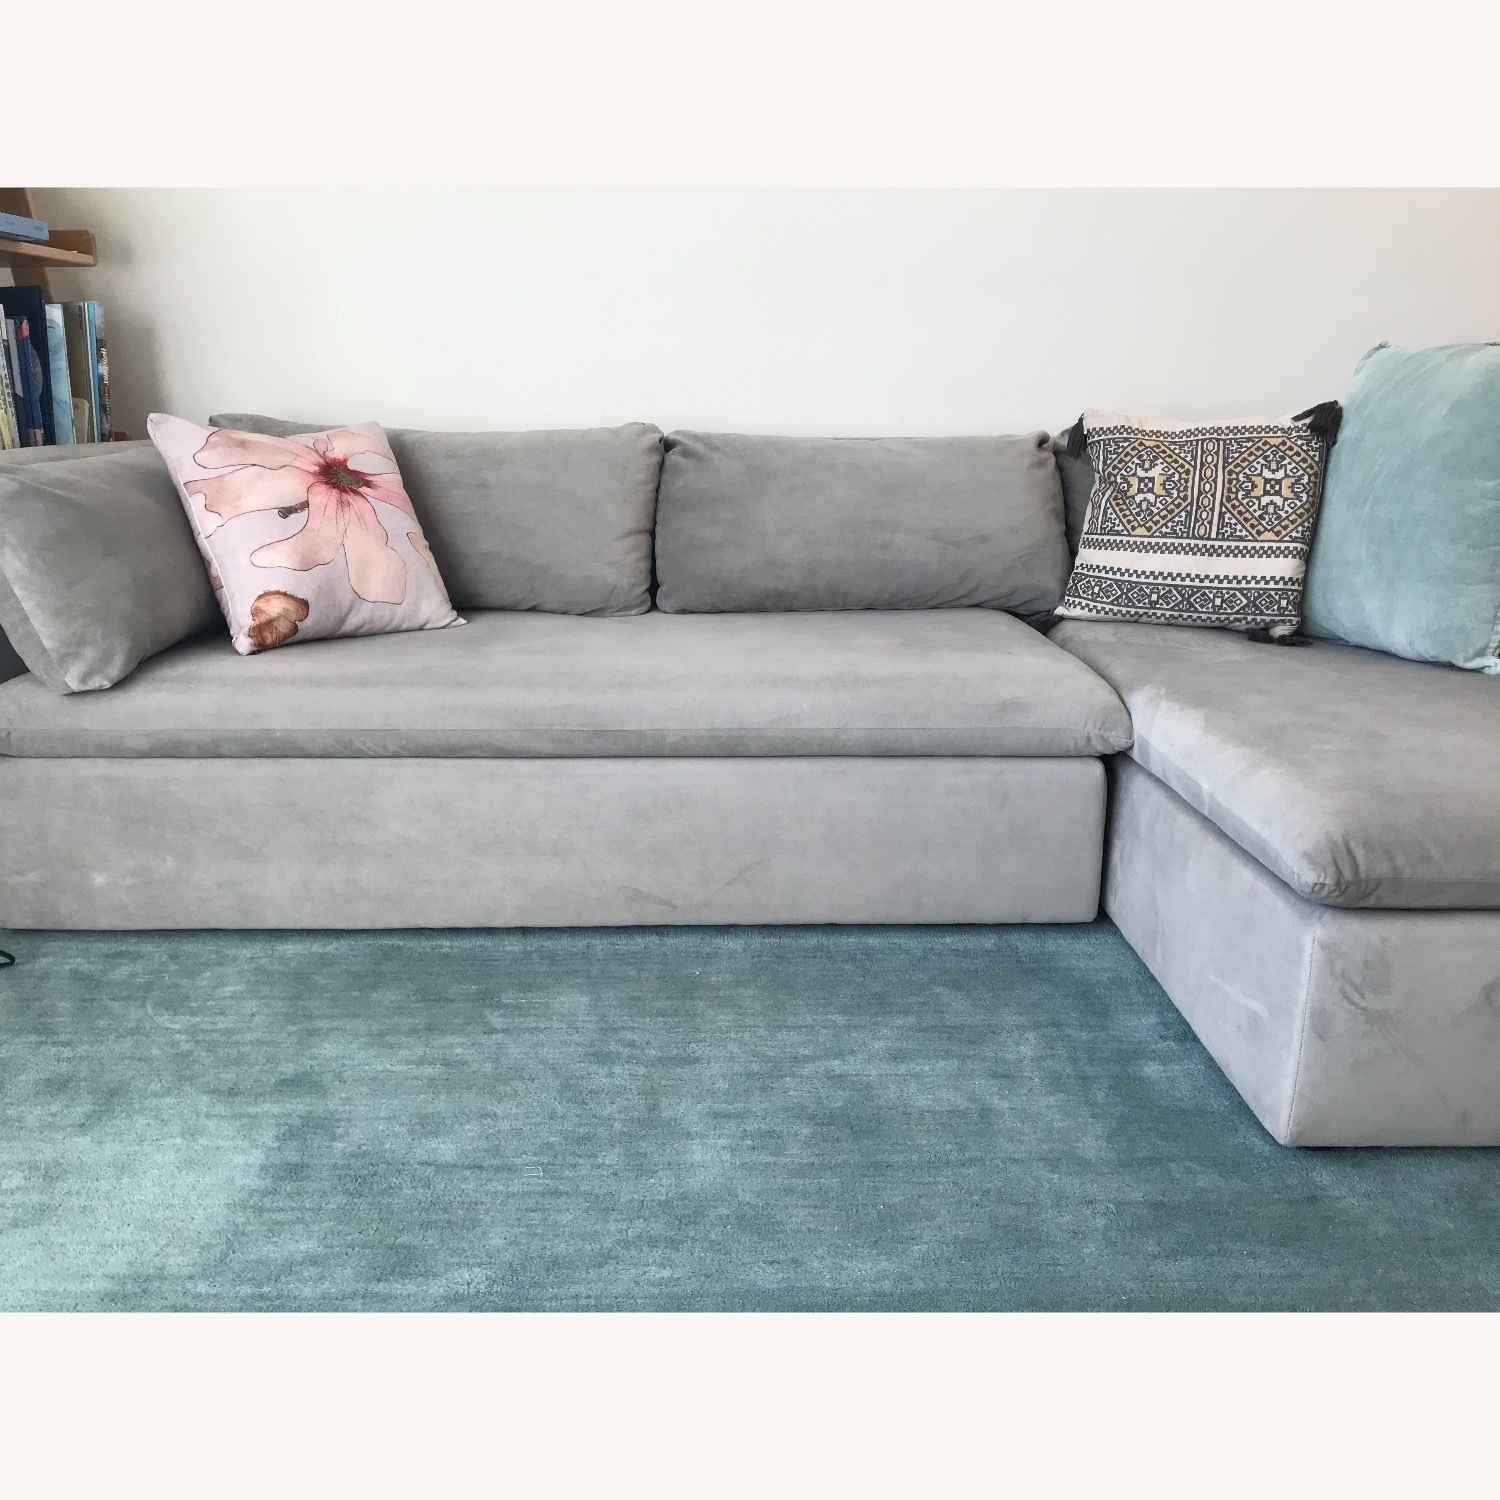 West Elm Shelter Sectional Sofa Dove Gray - image-10